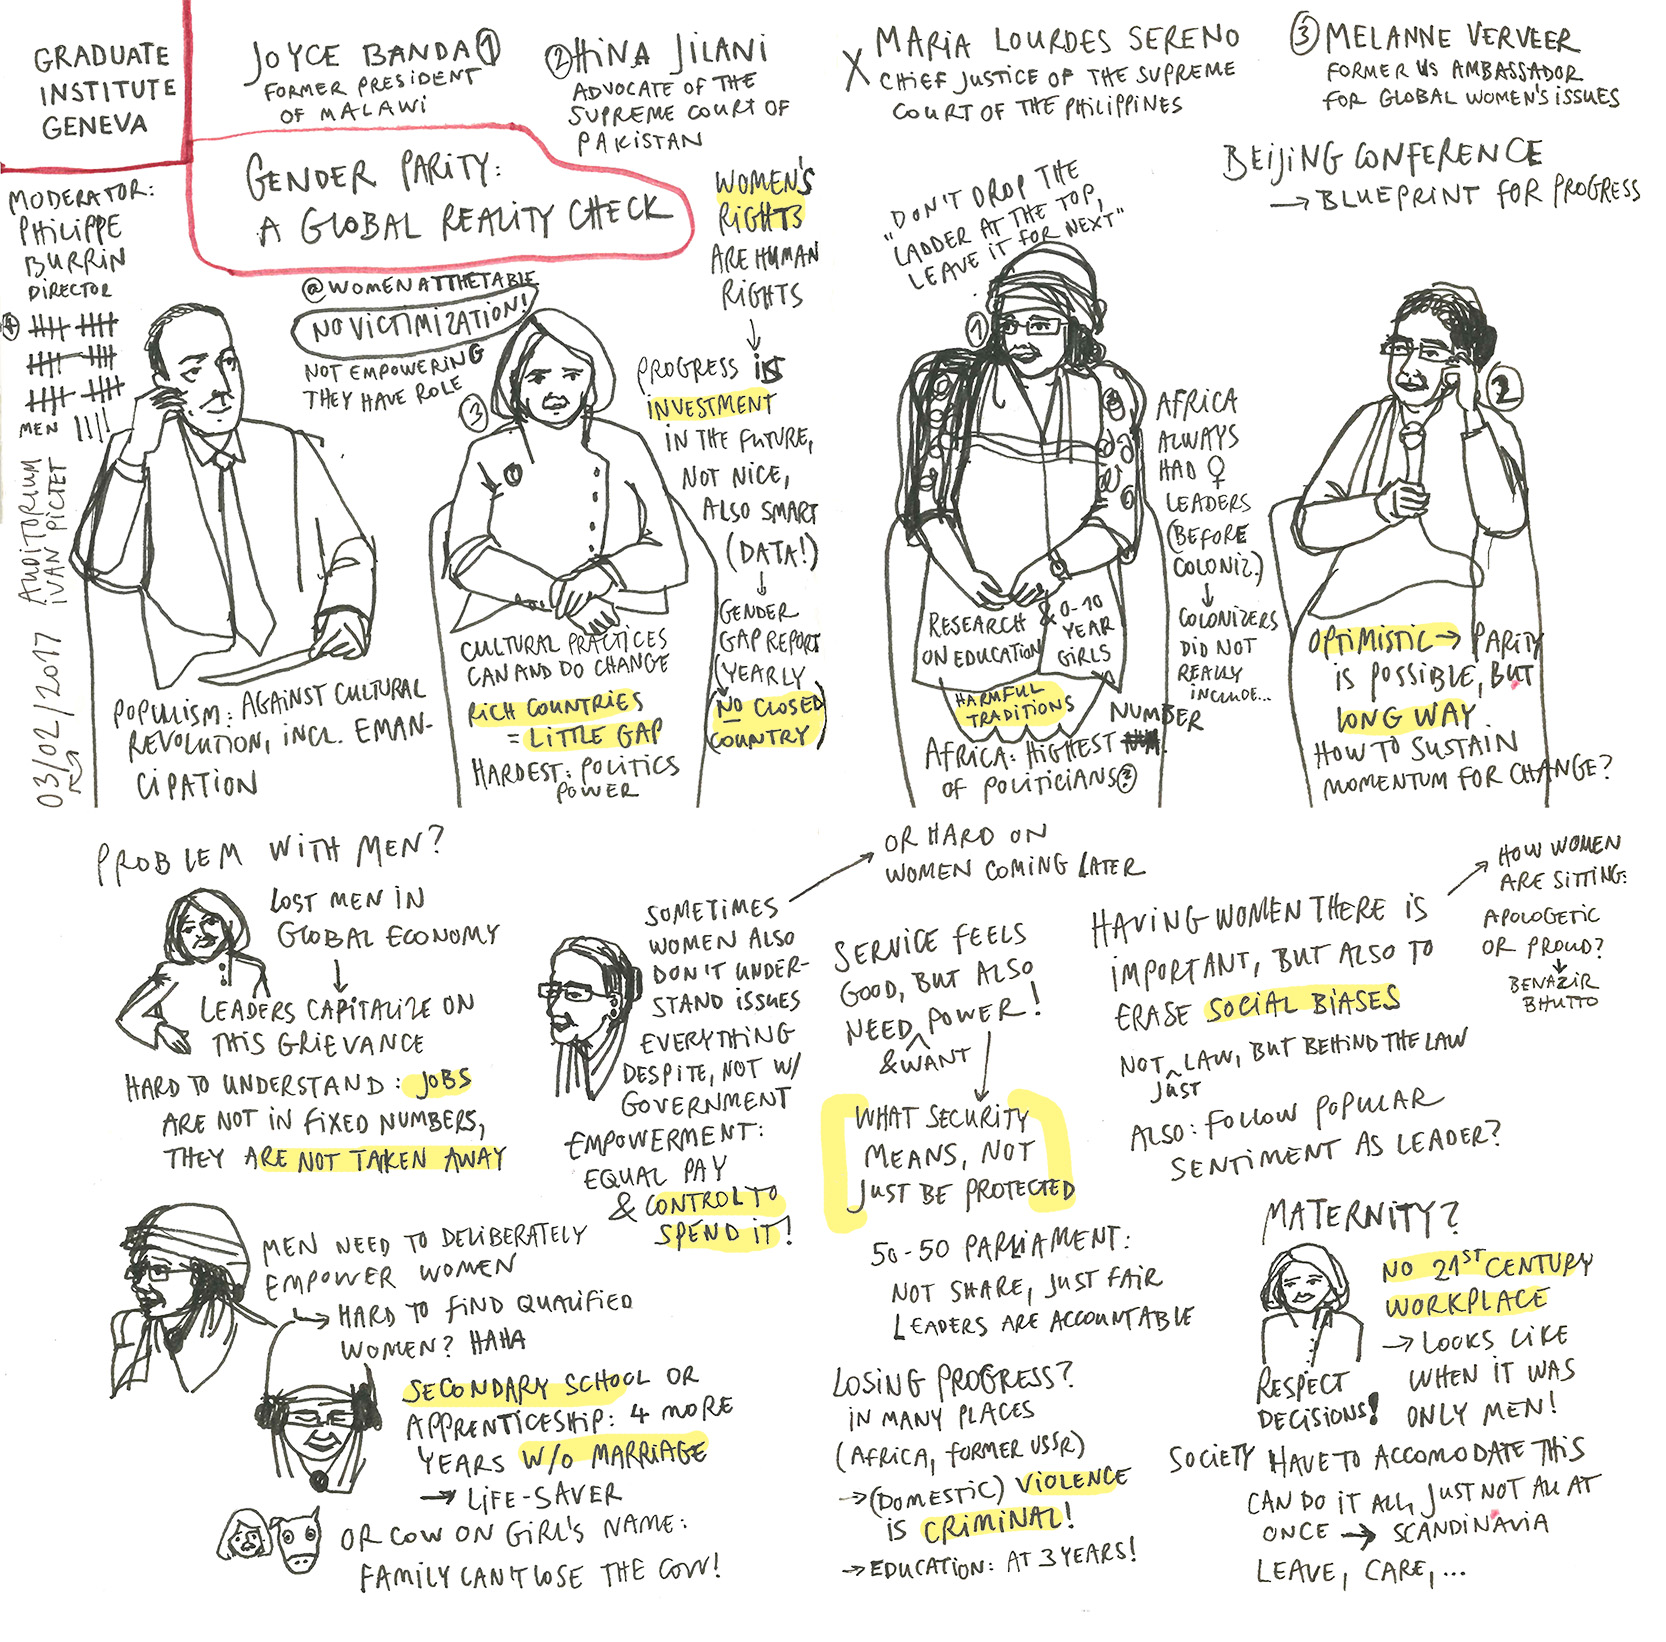 Sketchnotes of UN lecture